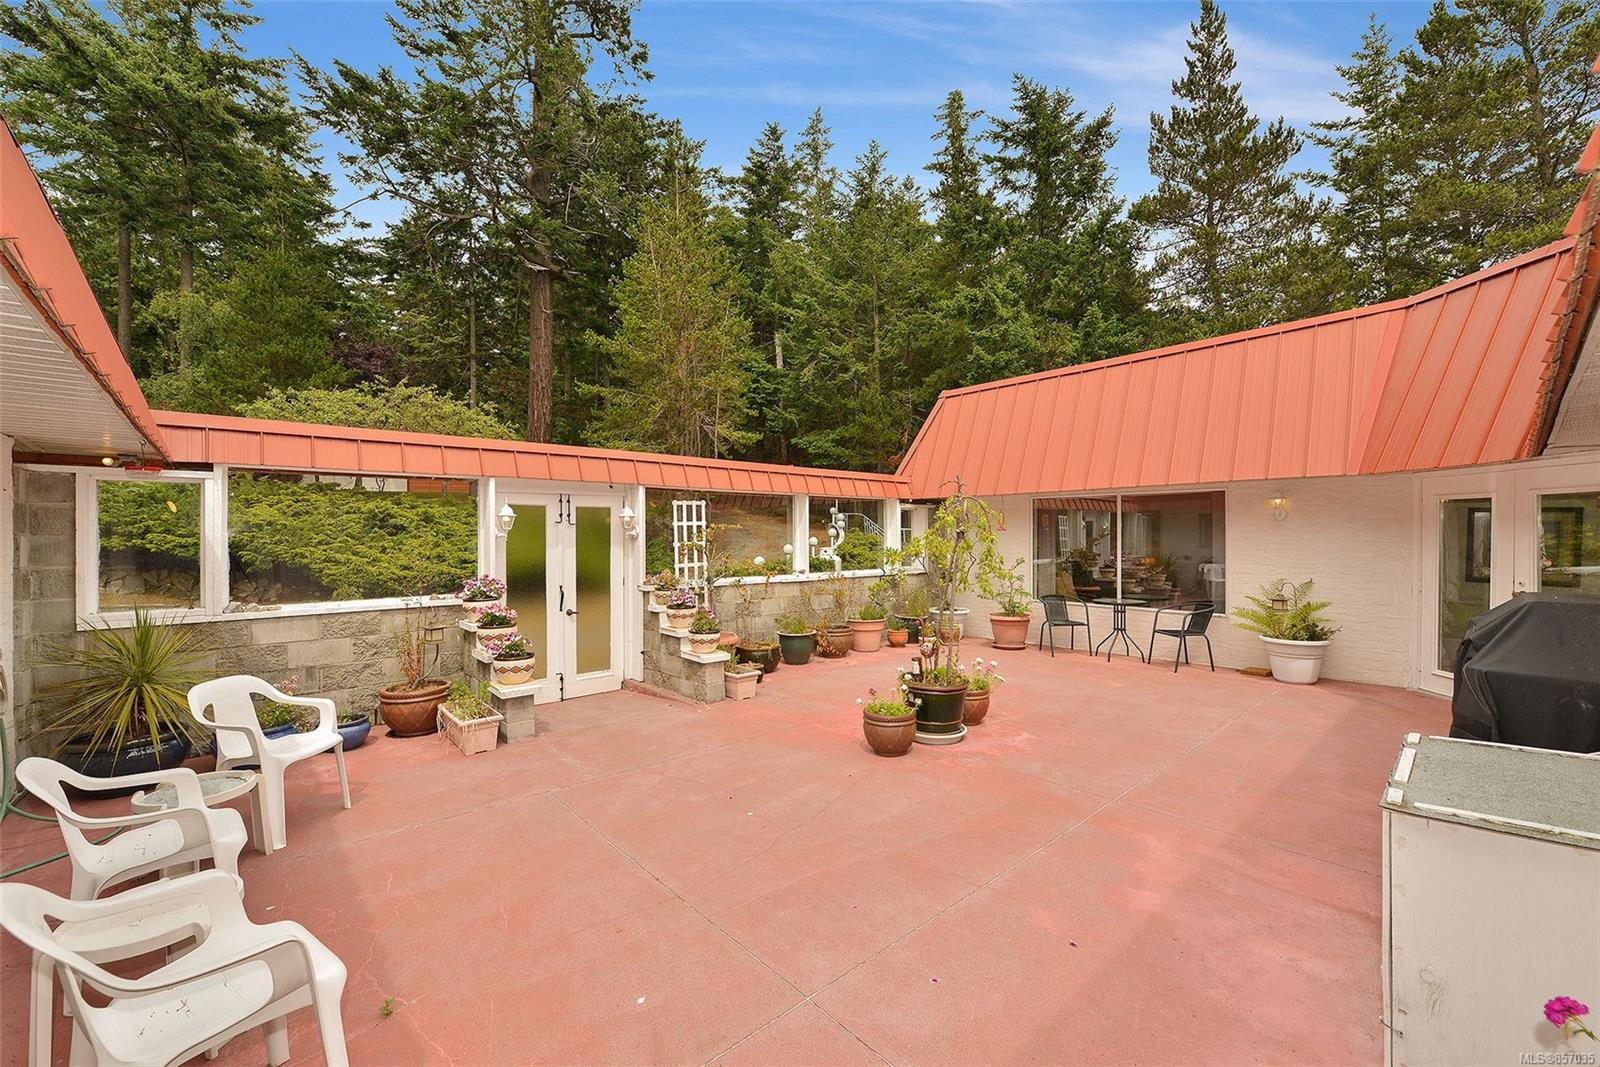 Photo 2: Photos: 172 Cliffside Rd in : GI Saturna Island House for sale (Gulf Islands)  : MLS®# 857035